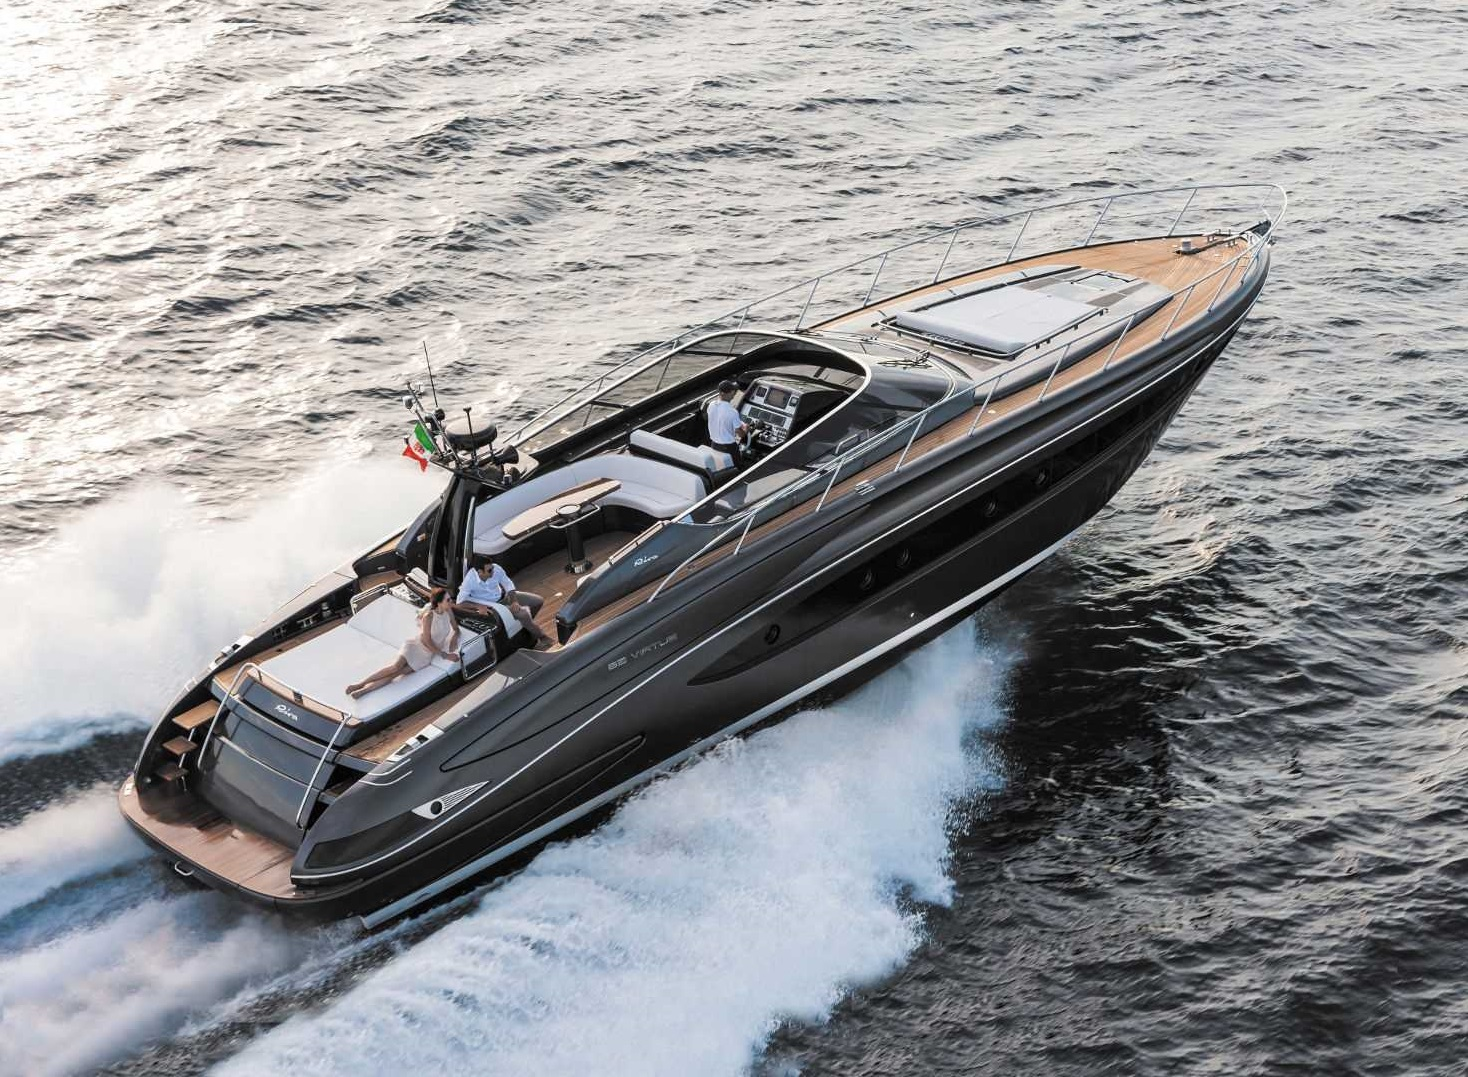 2016 Riva 63 Virtus Luxury Yacht for sale in Newport Beach